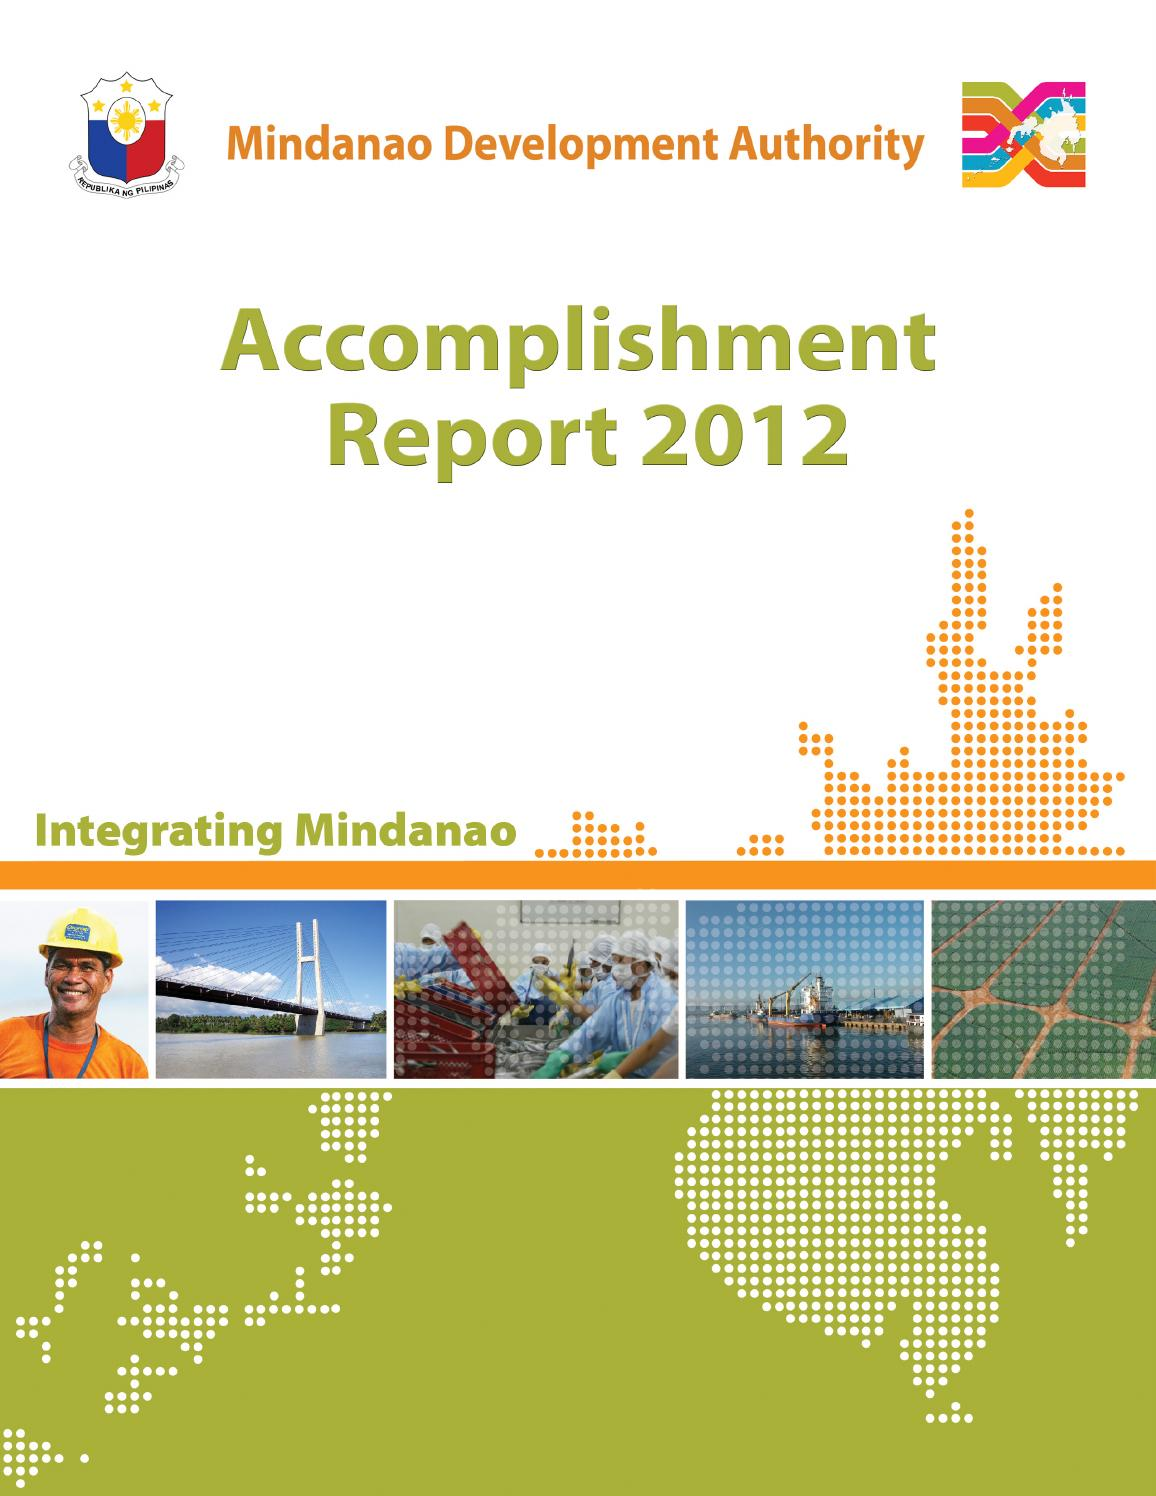 Minda Accomplishment Report 2012 By Mindanao Development Authority - Issuu